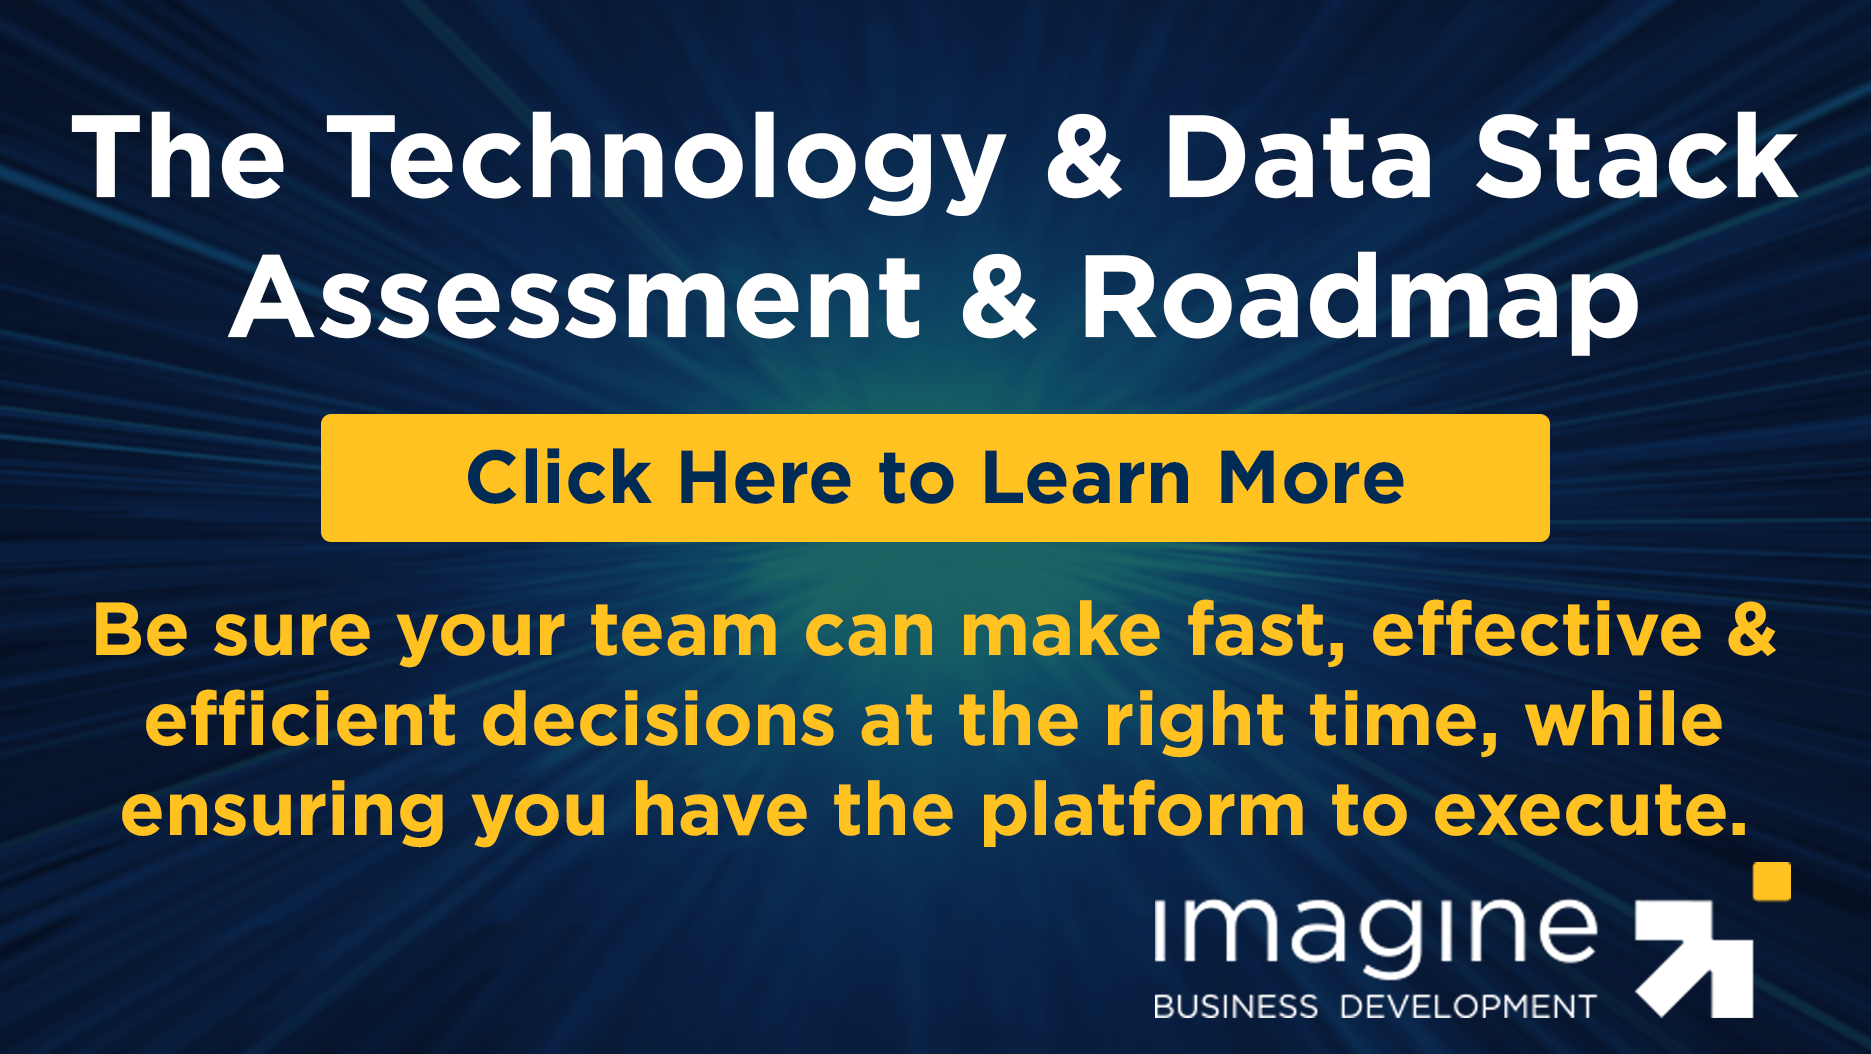 Tech-Data-Stack-Assessment